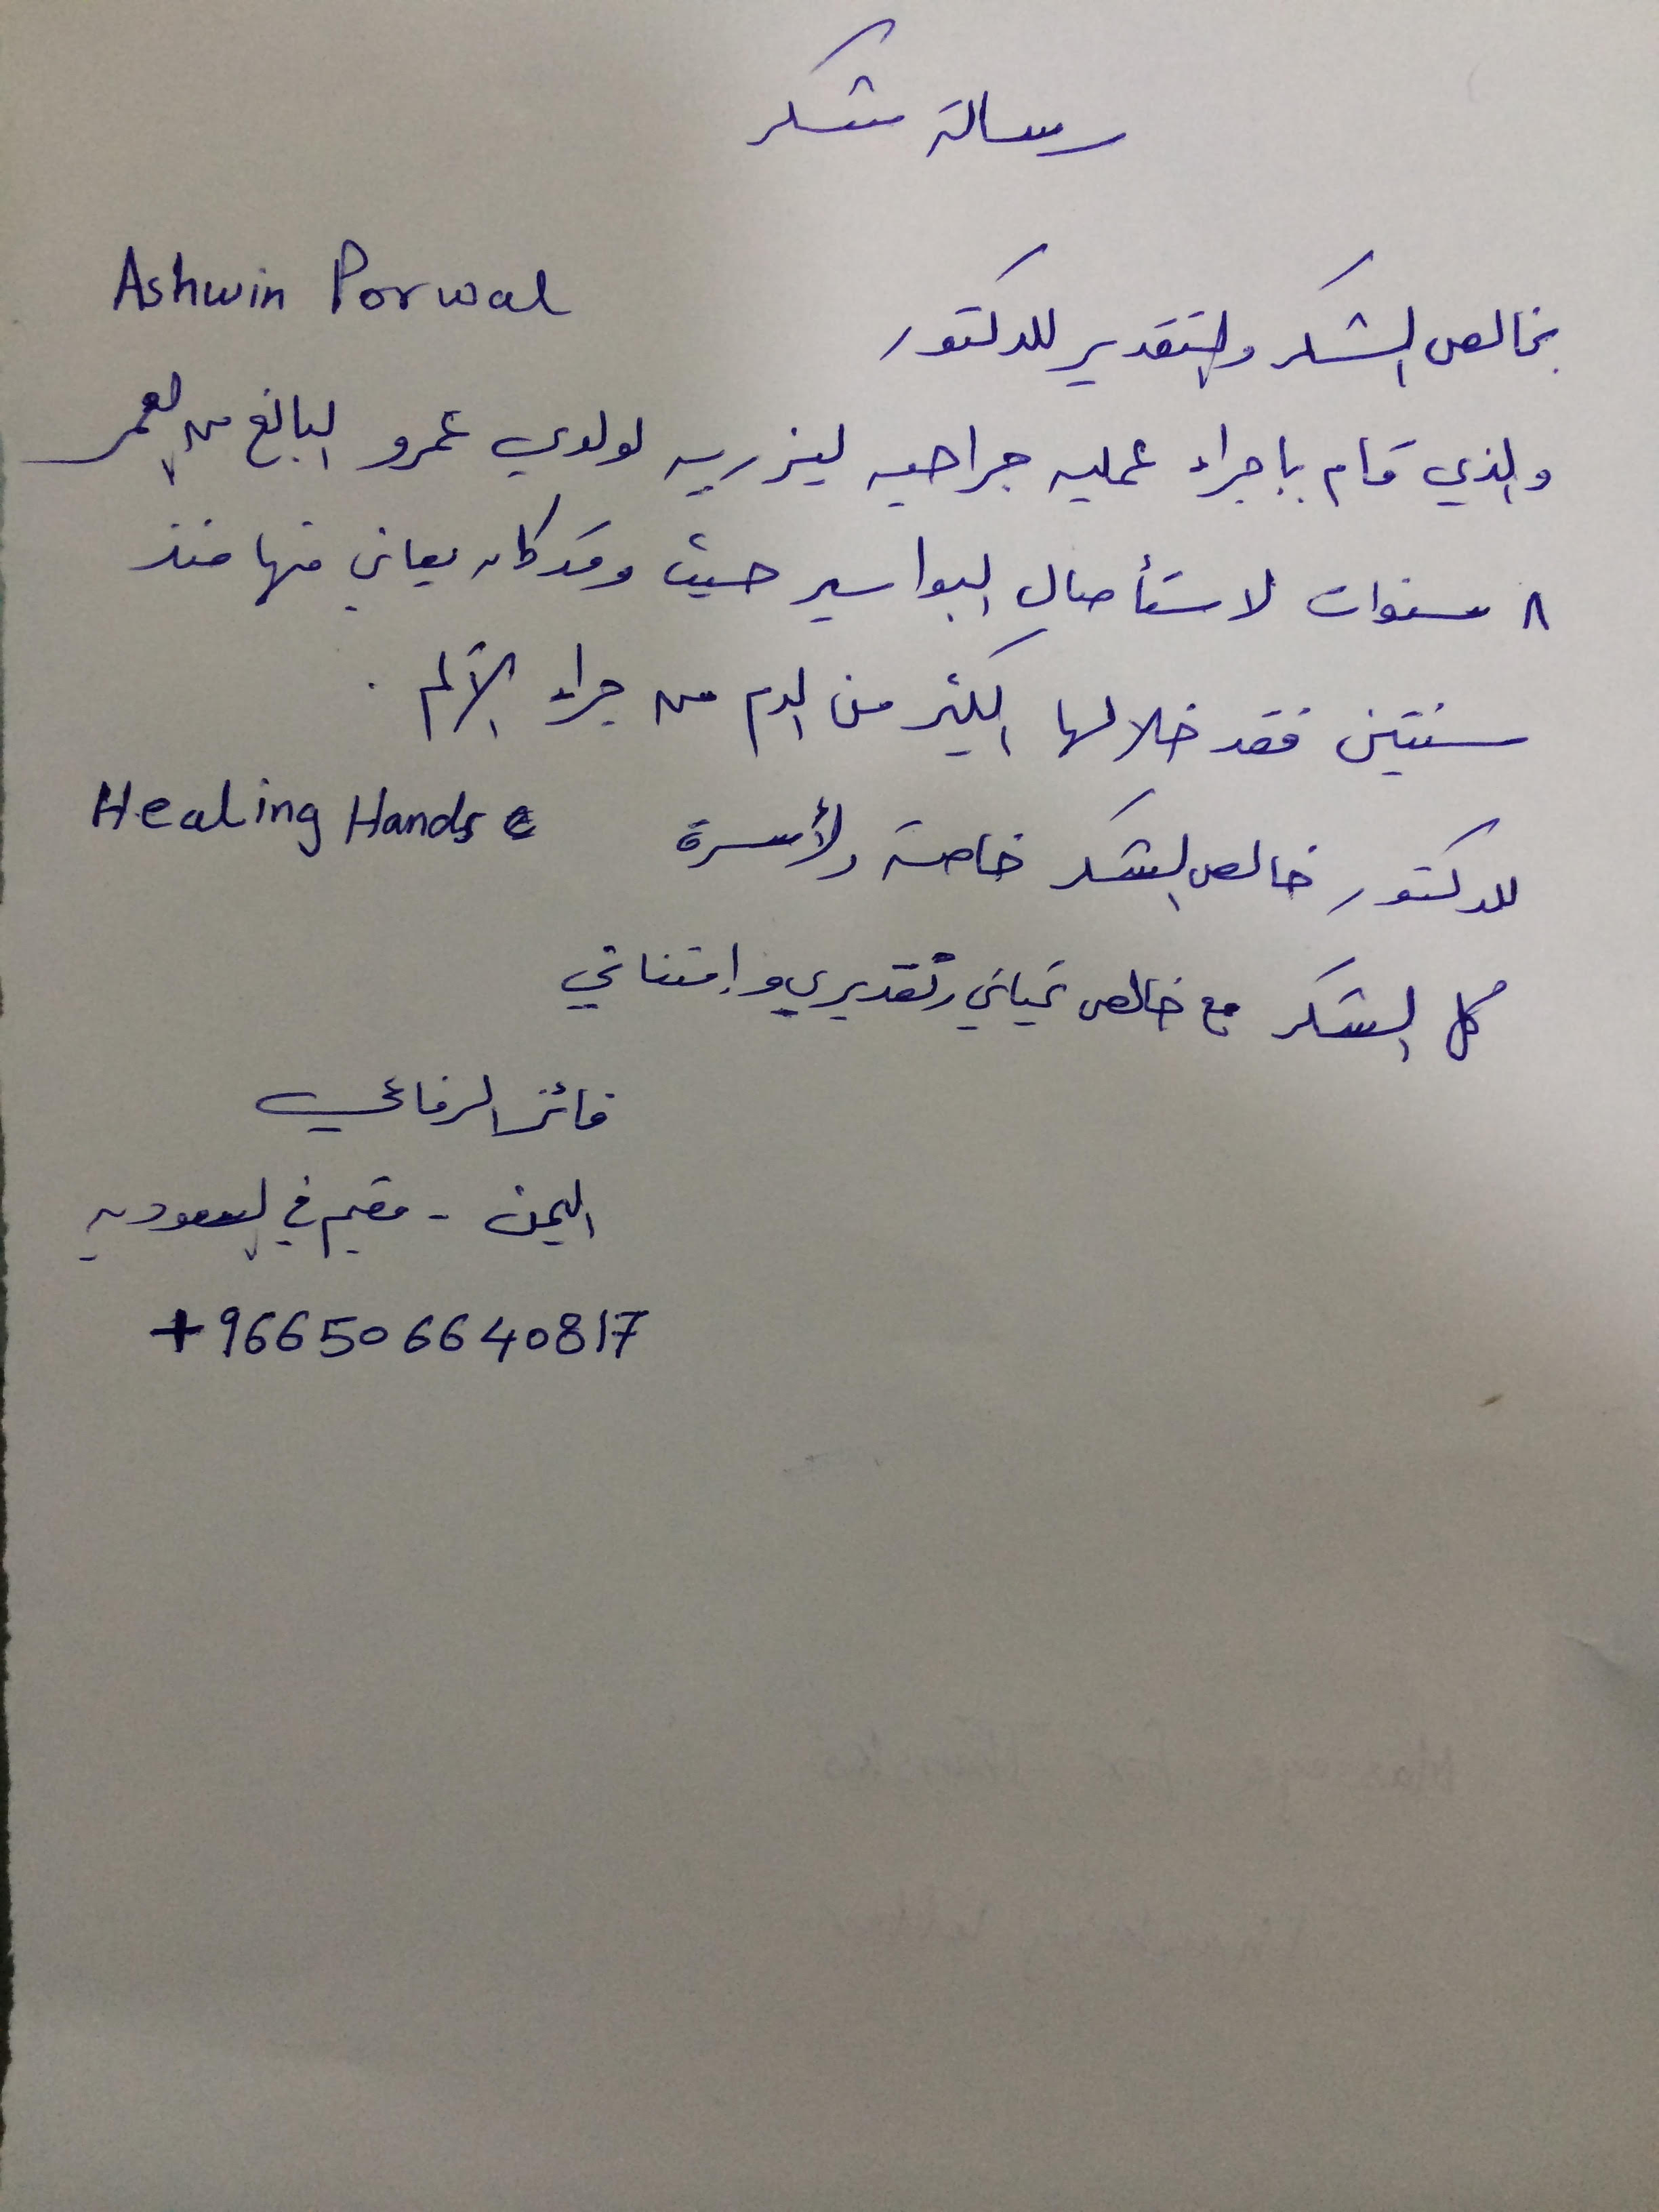 Testimonial after treatment of fistula in Arabic language